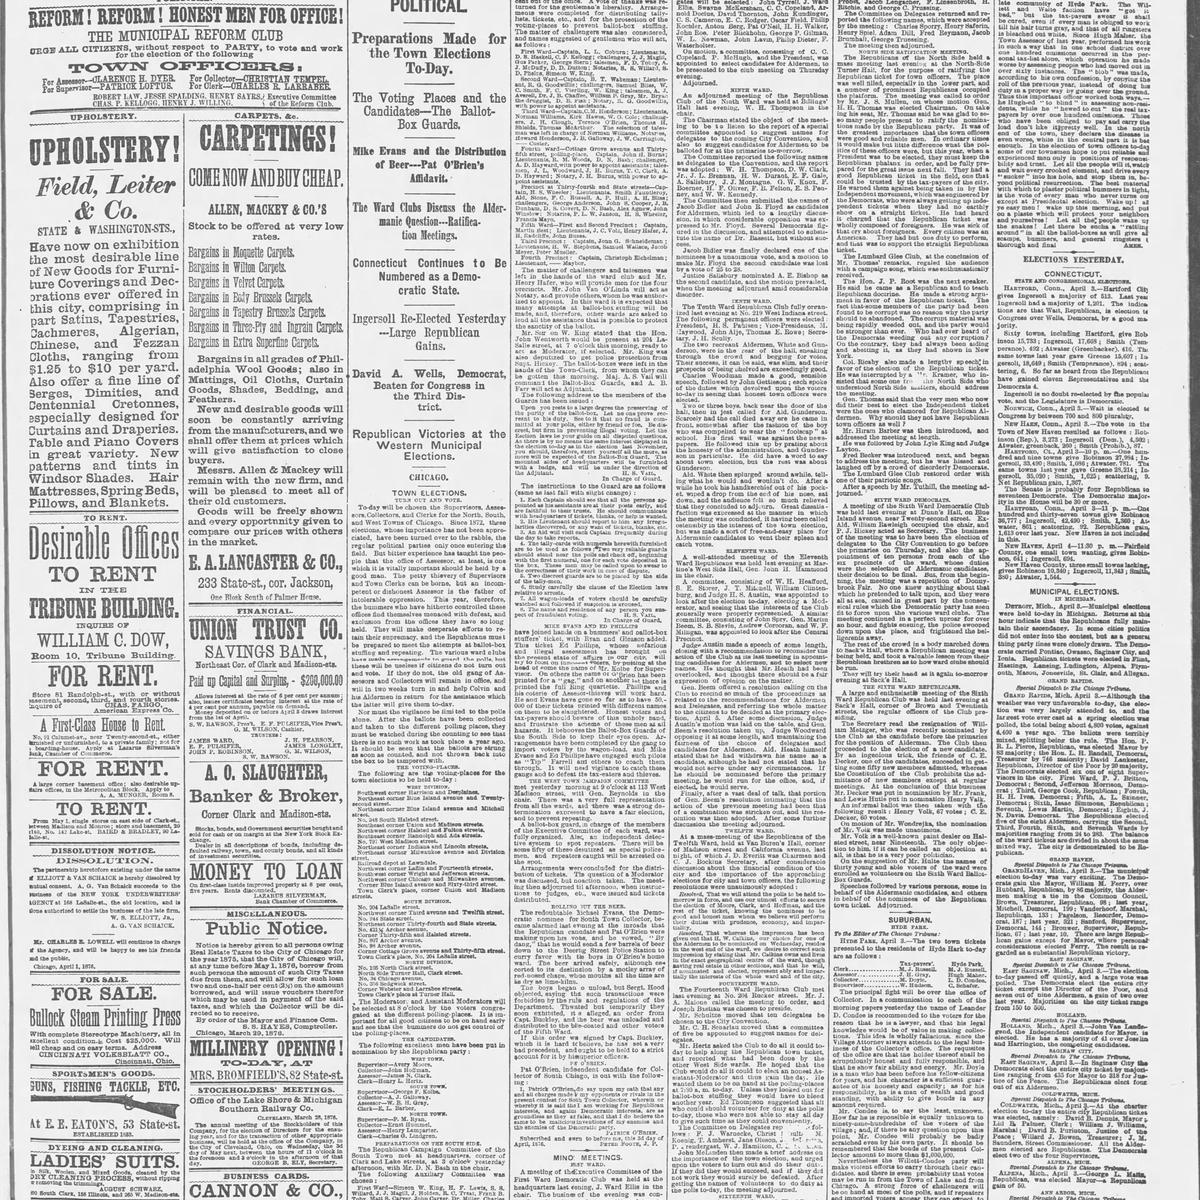 The Chicago Tribune, 1876-04-04, page 1